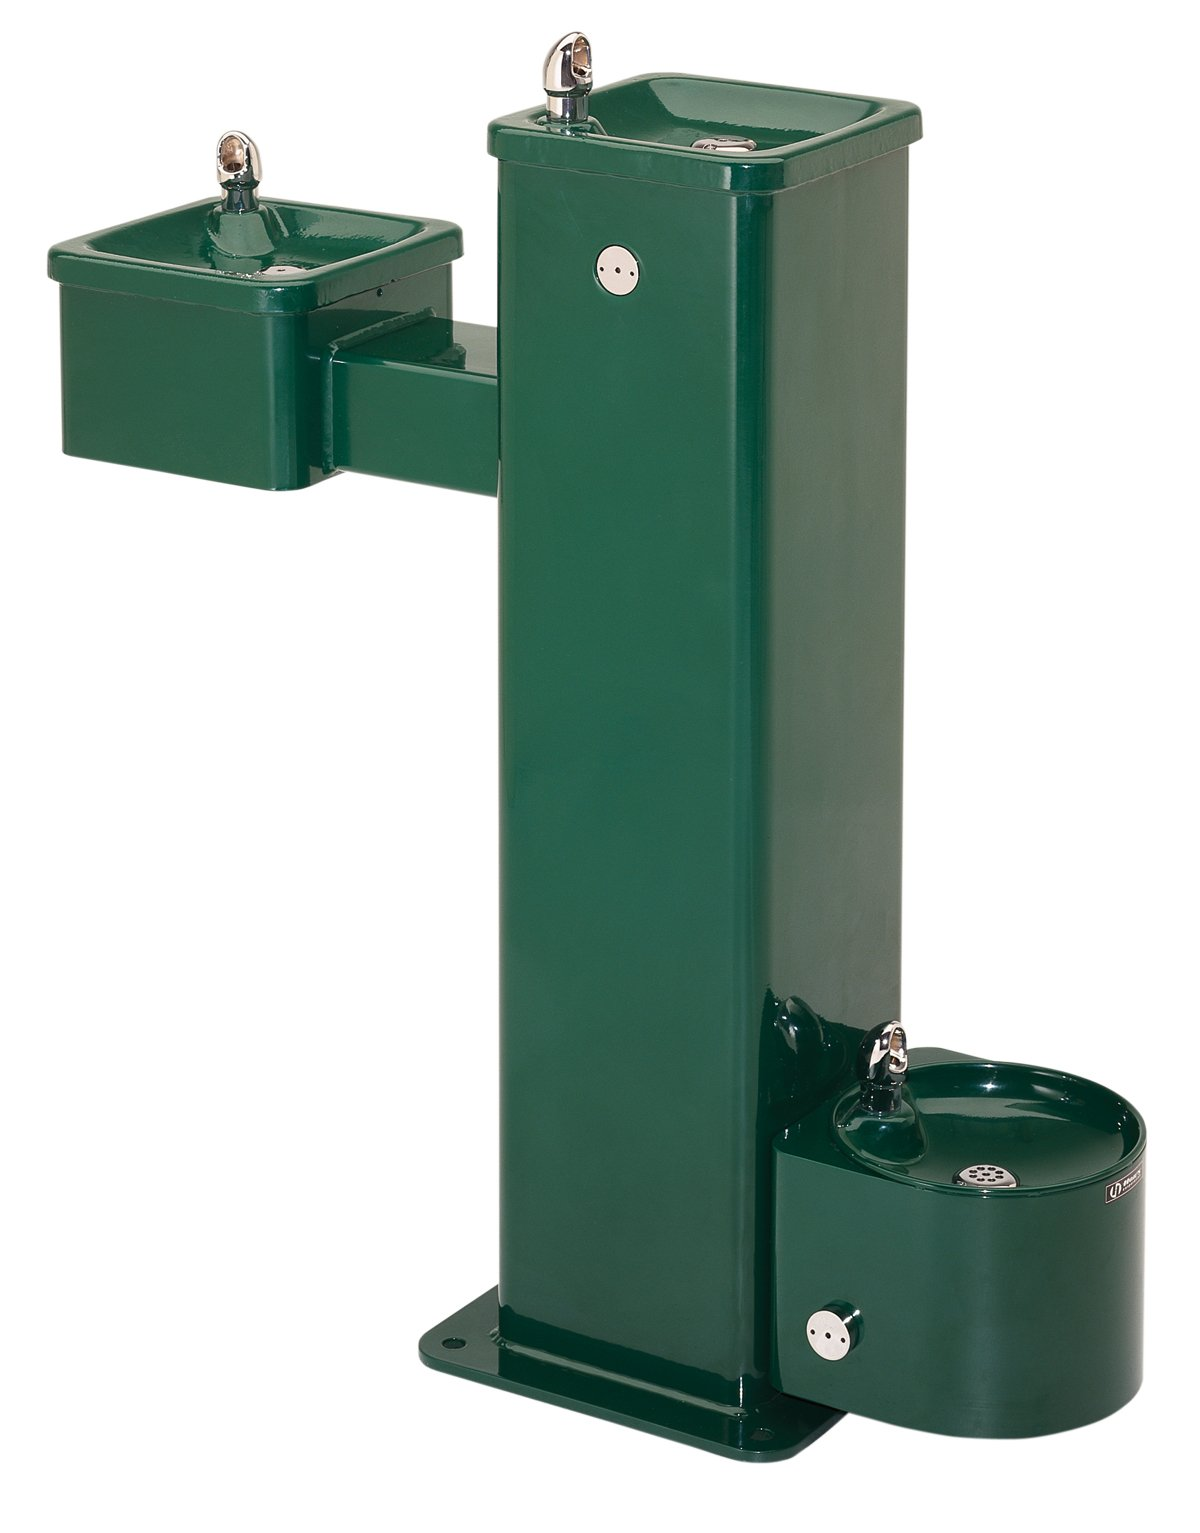 Haws 3500D ''Hi-Lo'' Barrier-Free Vandal-Resistant Stainless Steel Pedestal Drinking Fountain with Pet Fountain and Green Powder-Coated Finish